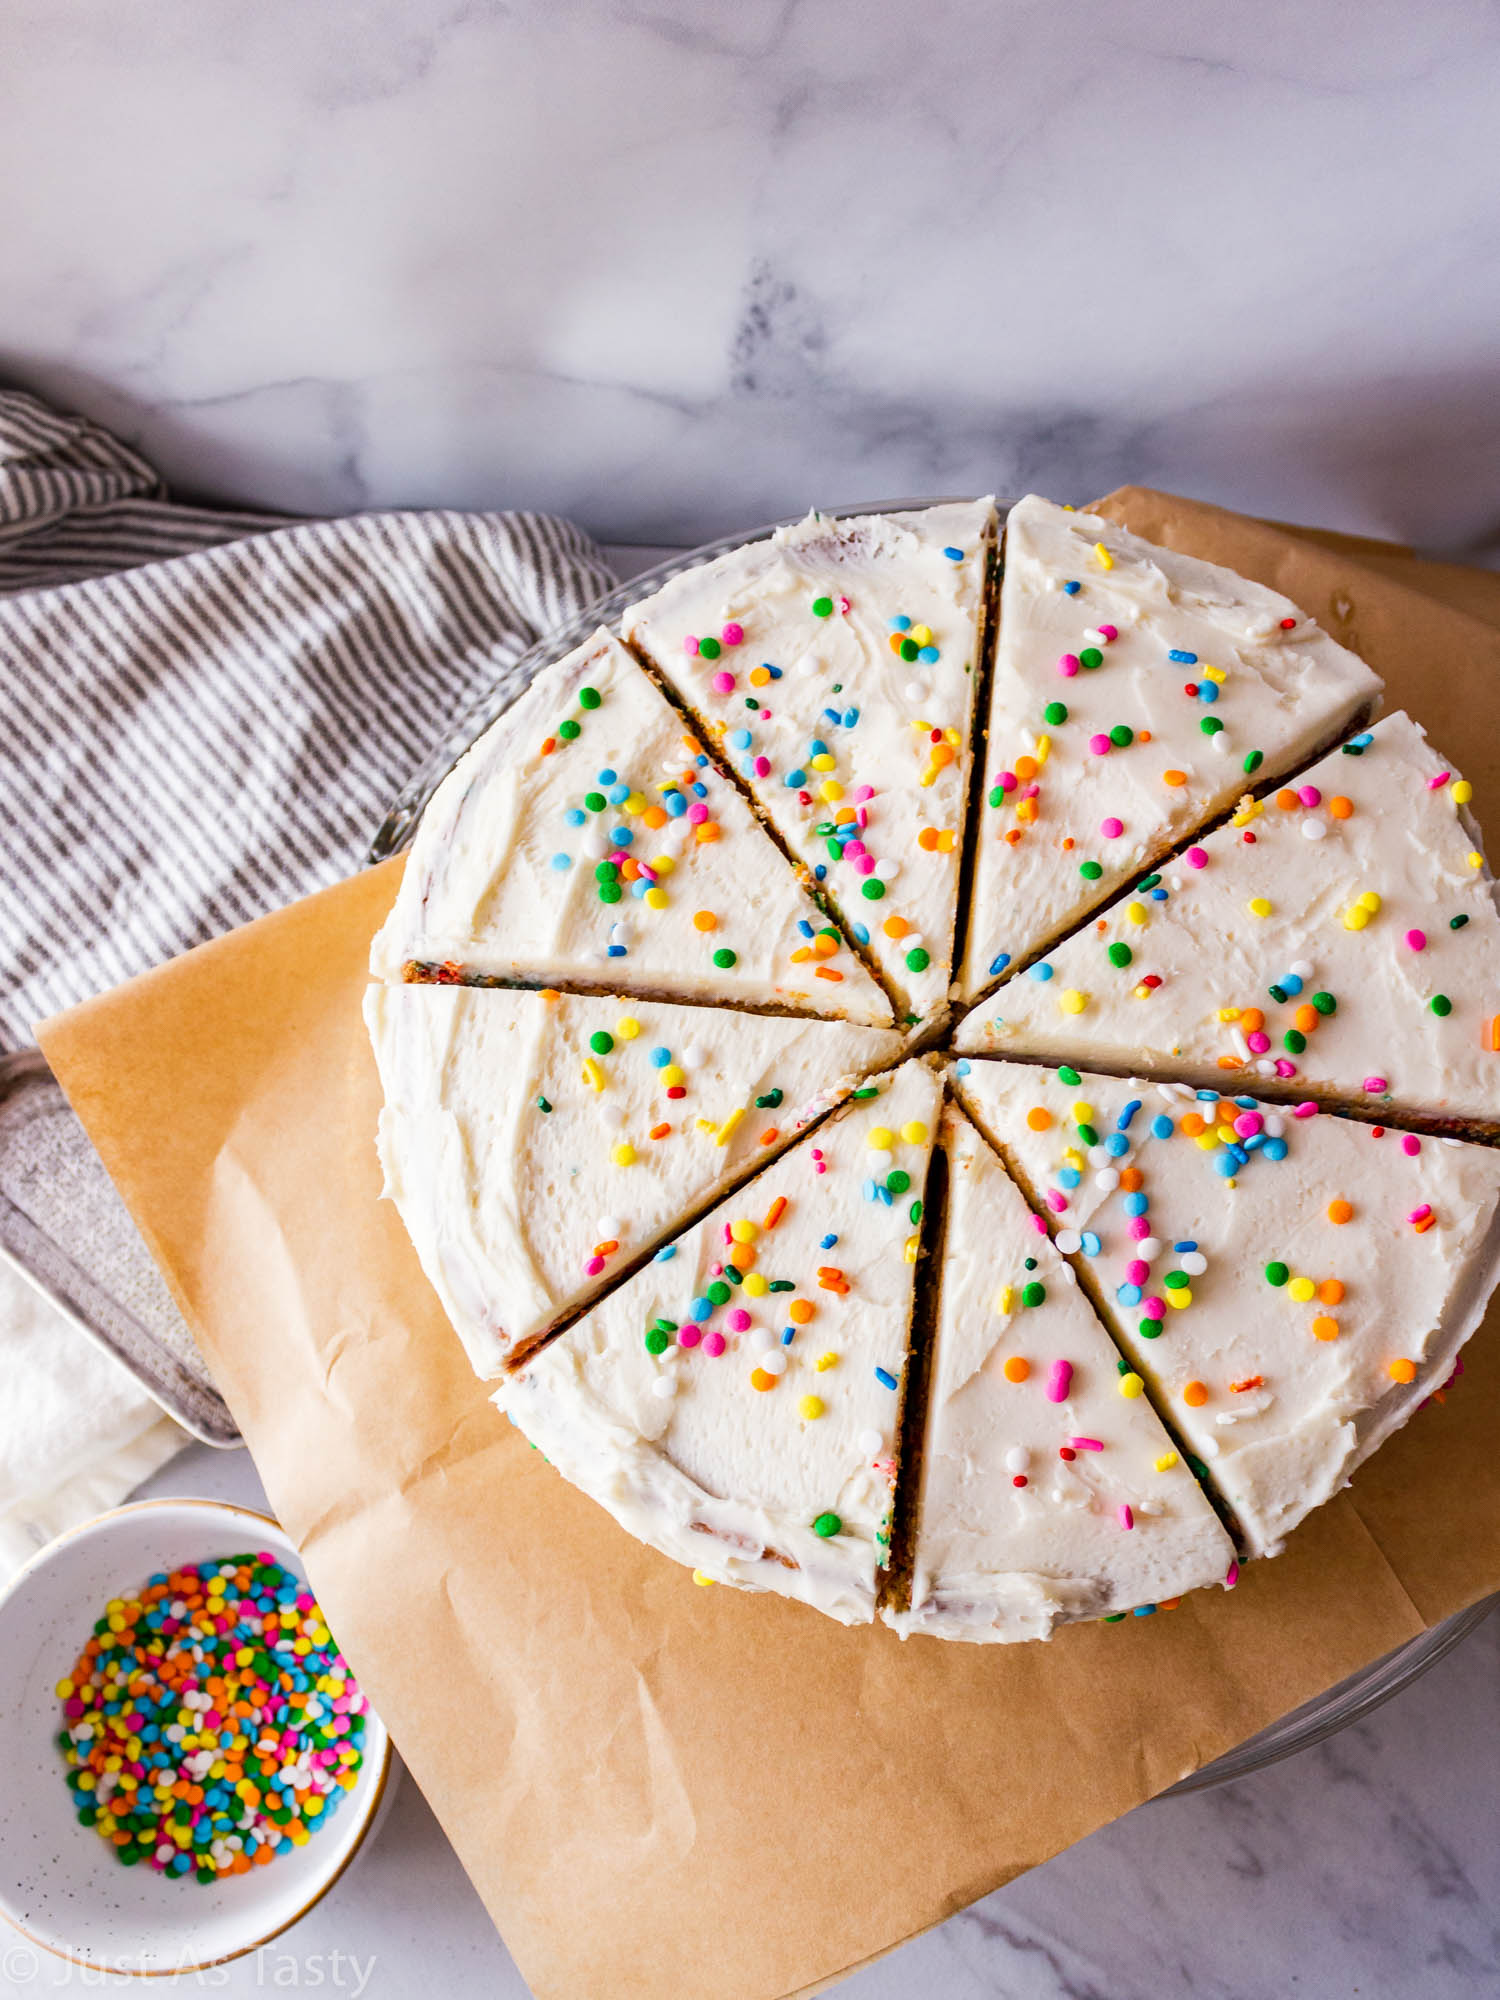 Frosted gluten free funfetti cake cut into slices.